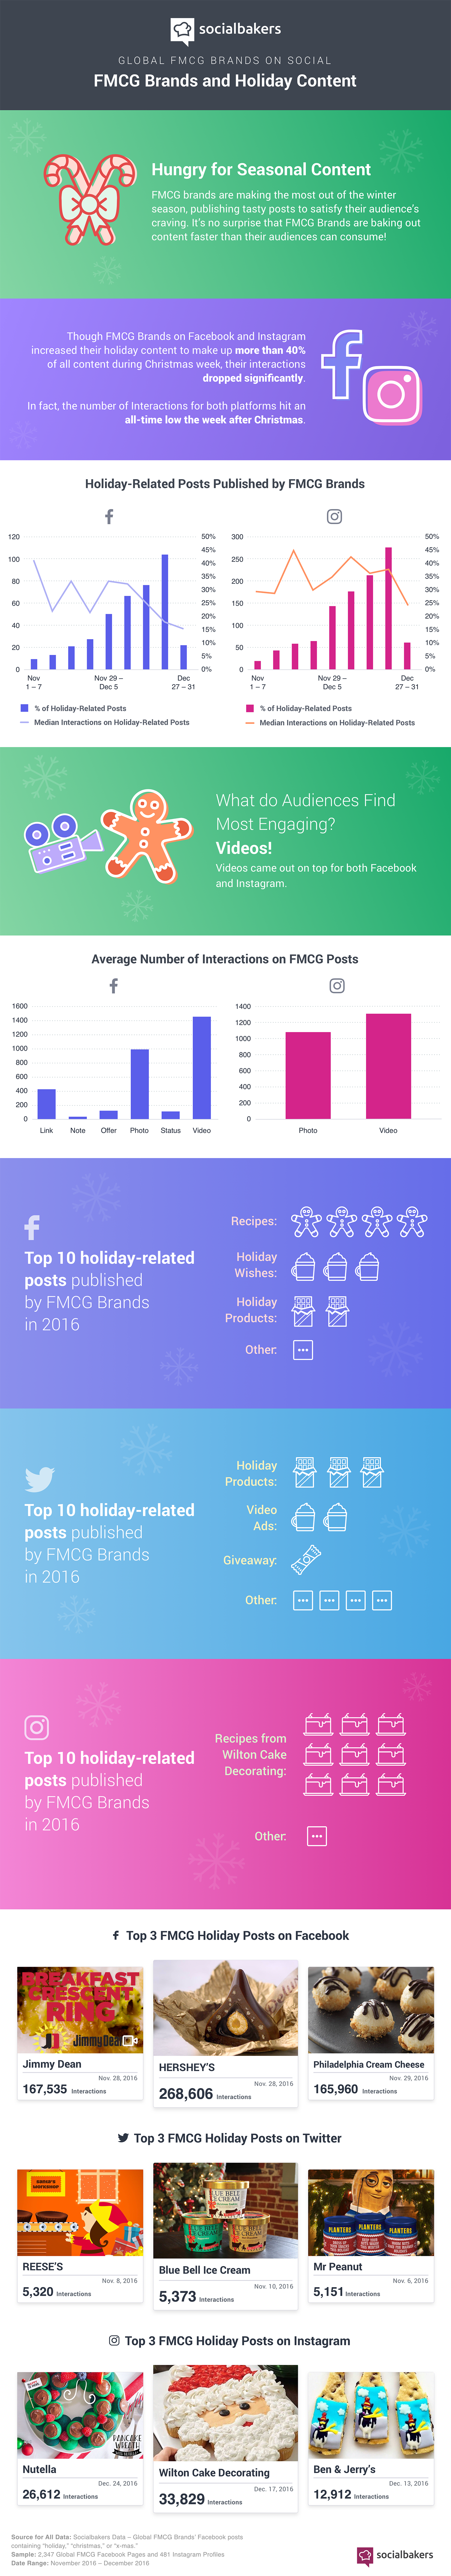 1511422903-fmcg_infographic.png